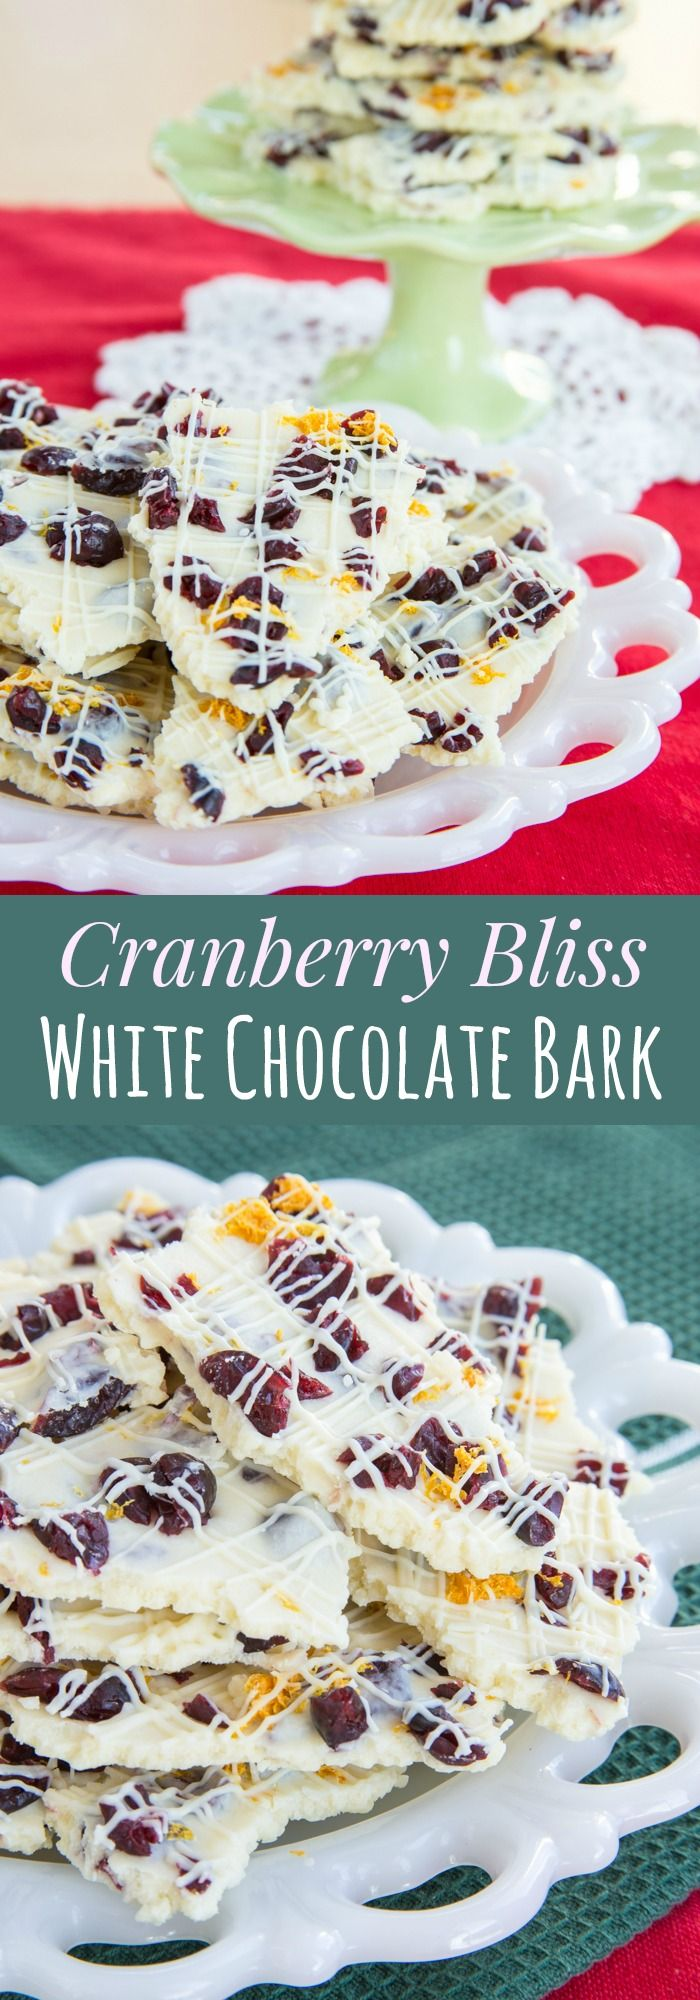 178 best Fudge and Bark Recipes images on Pinterest | Chocolate ...